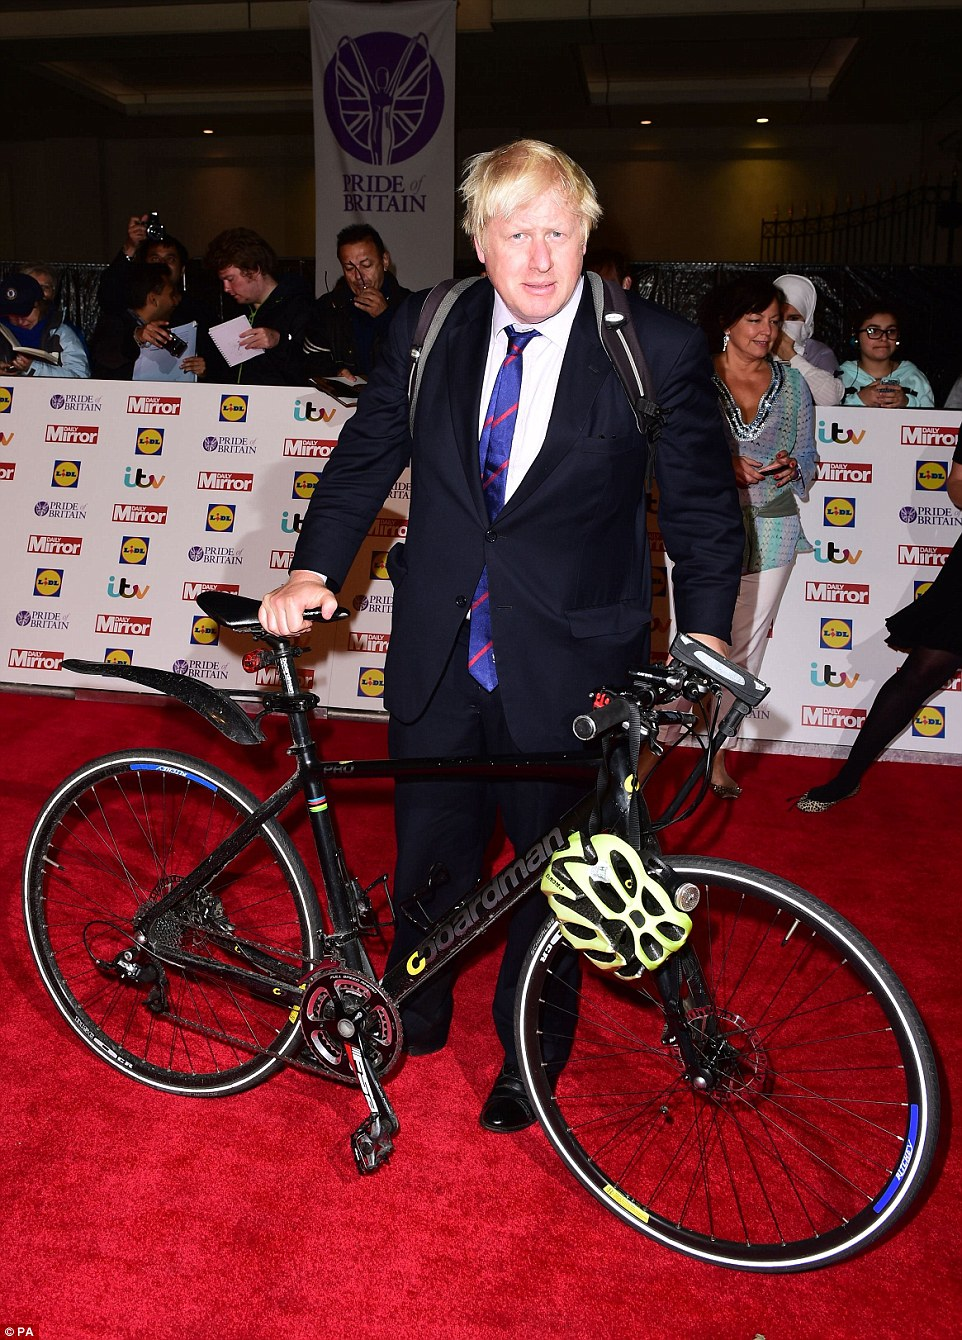 Get on your bike: London mayor Boris Johnson put in a typically showy appearance - arriving on two wheels